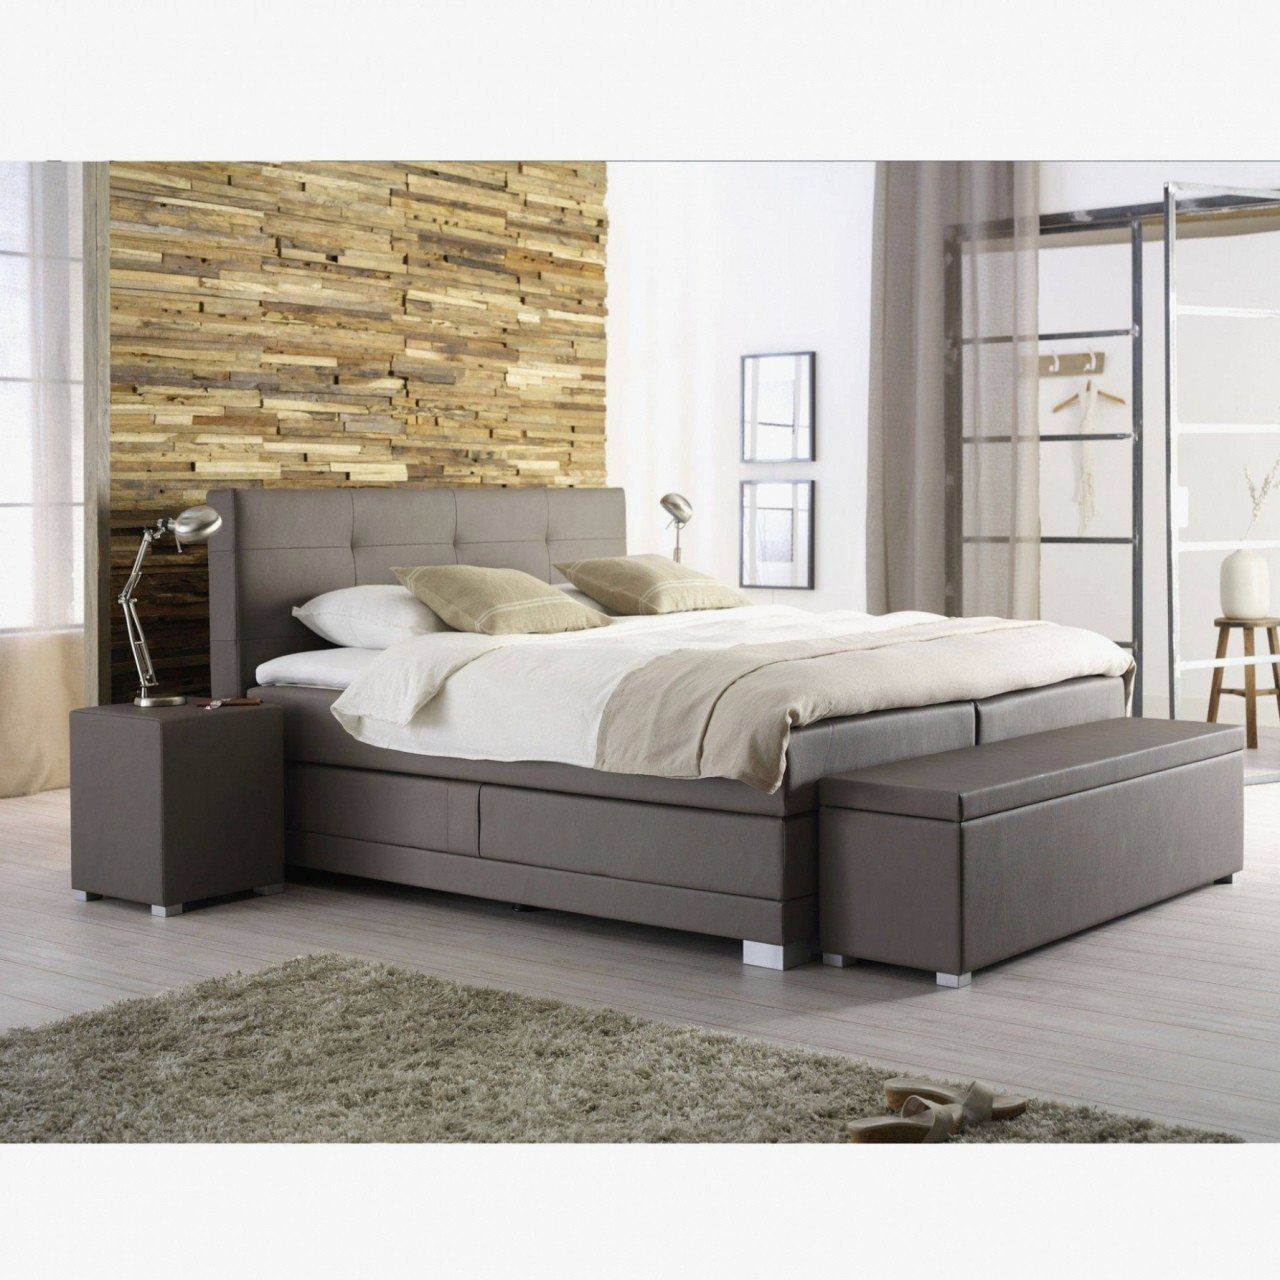 Cheap Bedroom Set with Mattress Inspirational Drawers Under Bed — Procura Home Blog